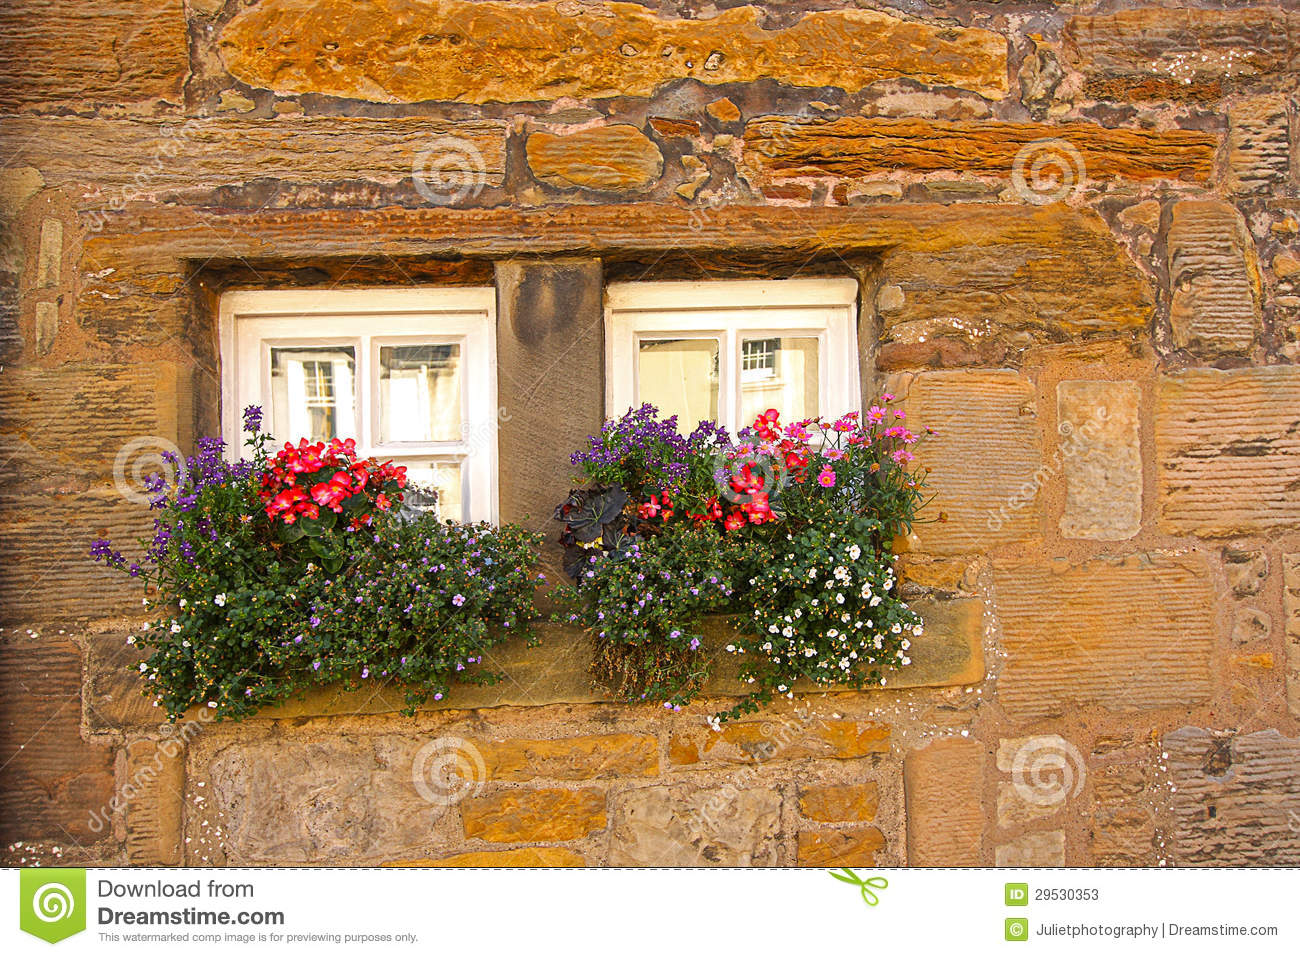 Tiny Scottish Windows With Flowers Stock Image - Image of house